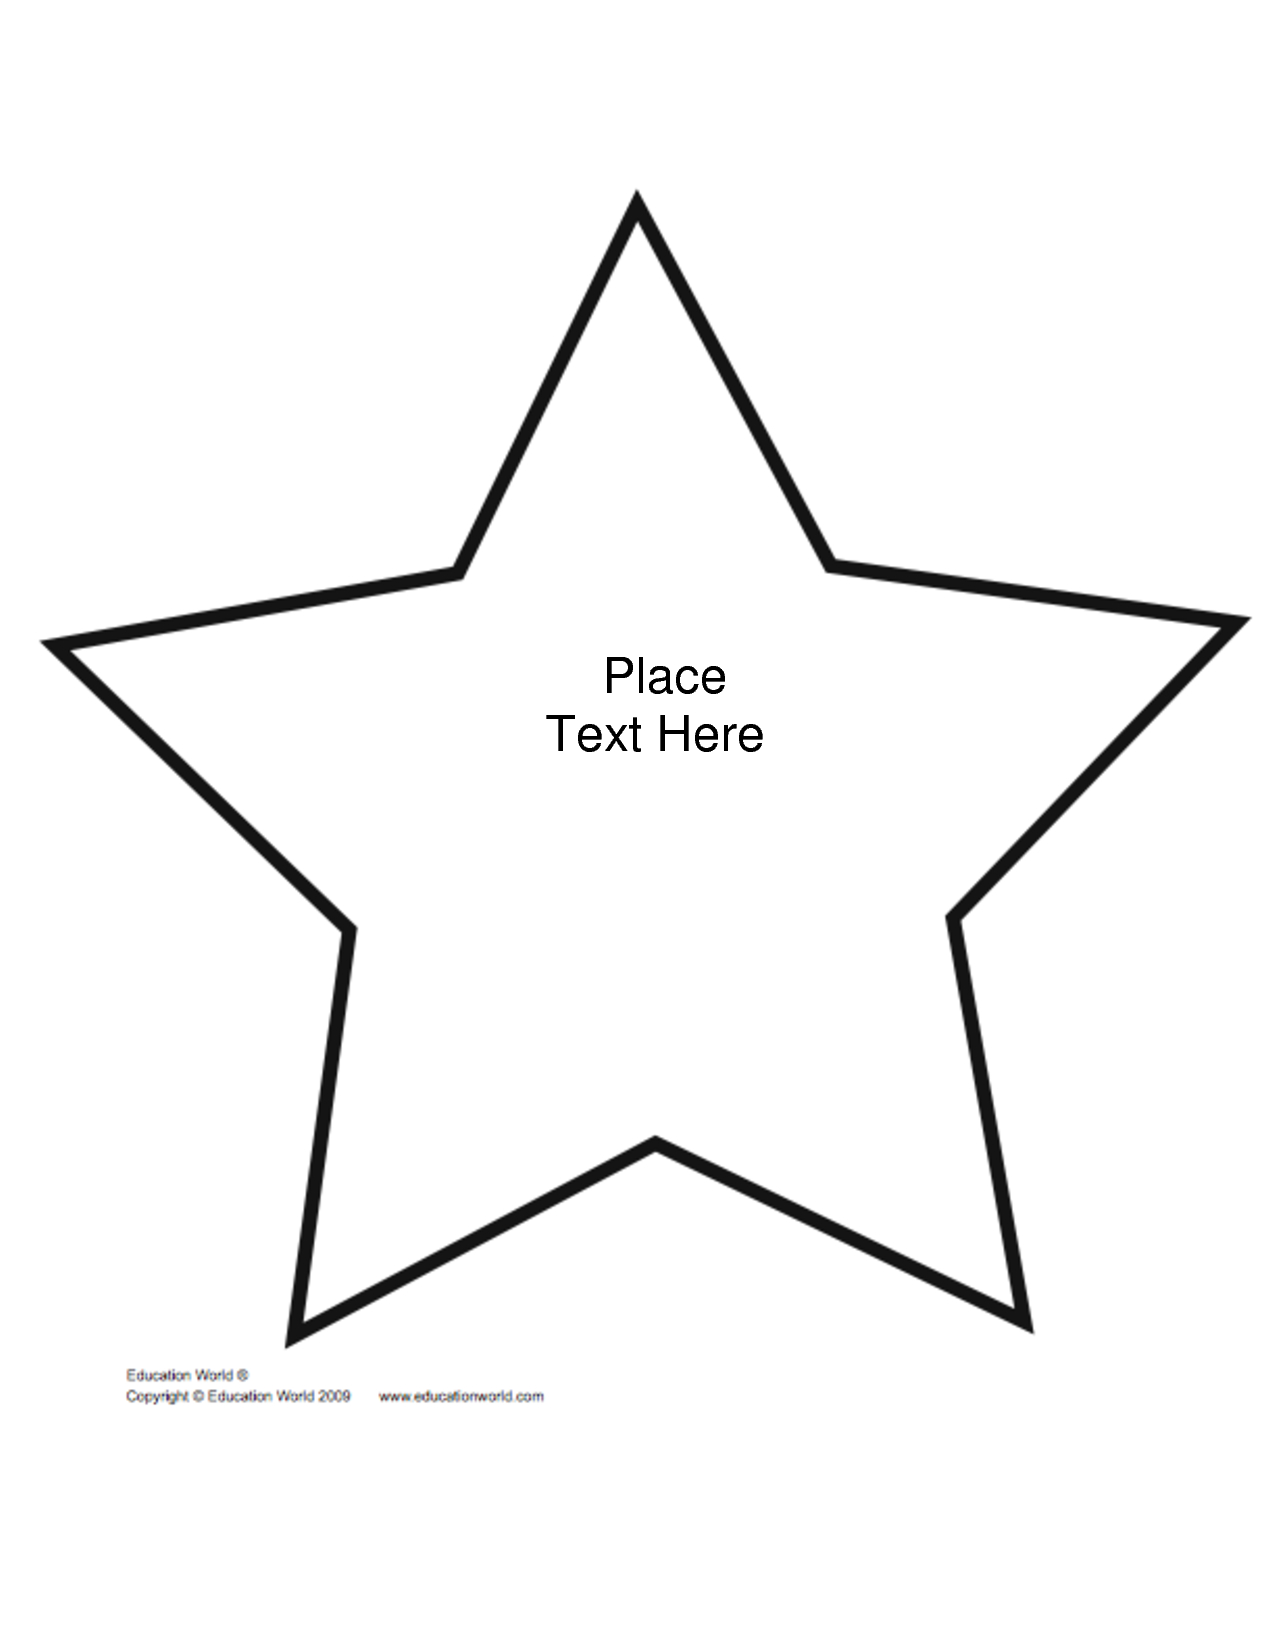 Free+Printable+Star+Shape+Templates | Biblical Preschool Lessons - Star Of David Template Free Printable